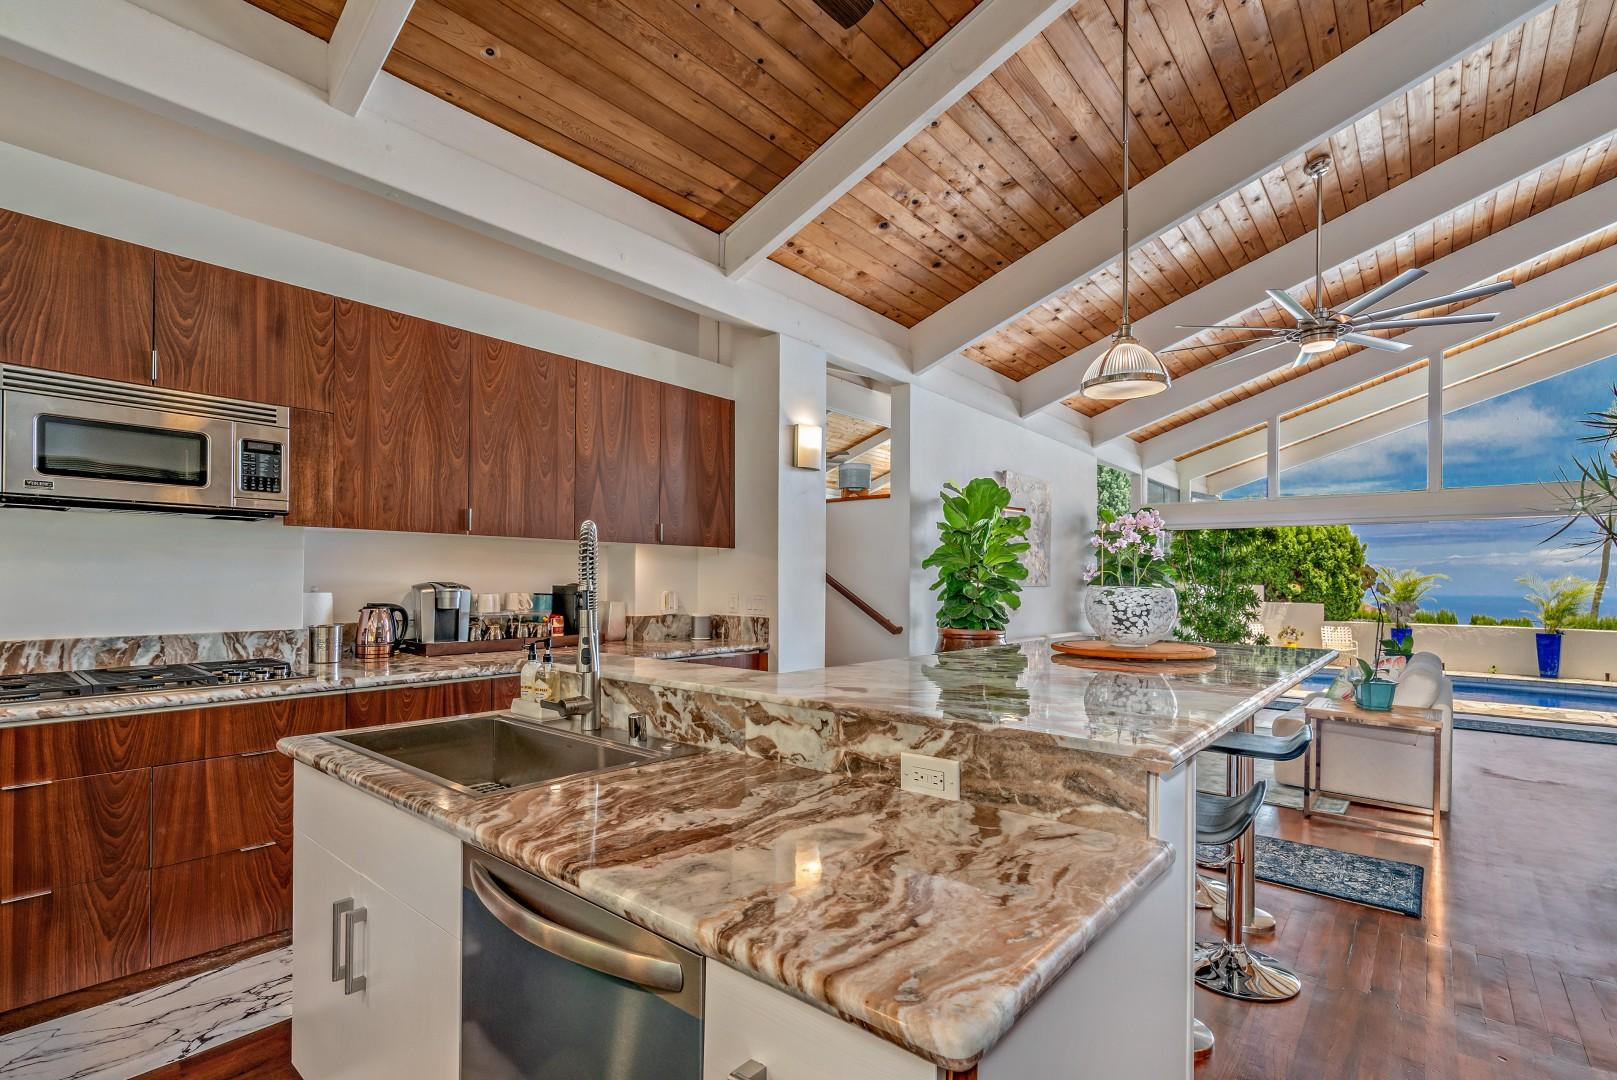 Everything you need in this spacious kitchen. Entertain while cook or let us recommend a private chef.